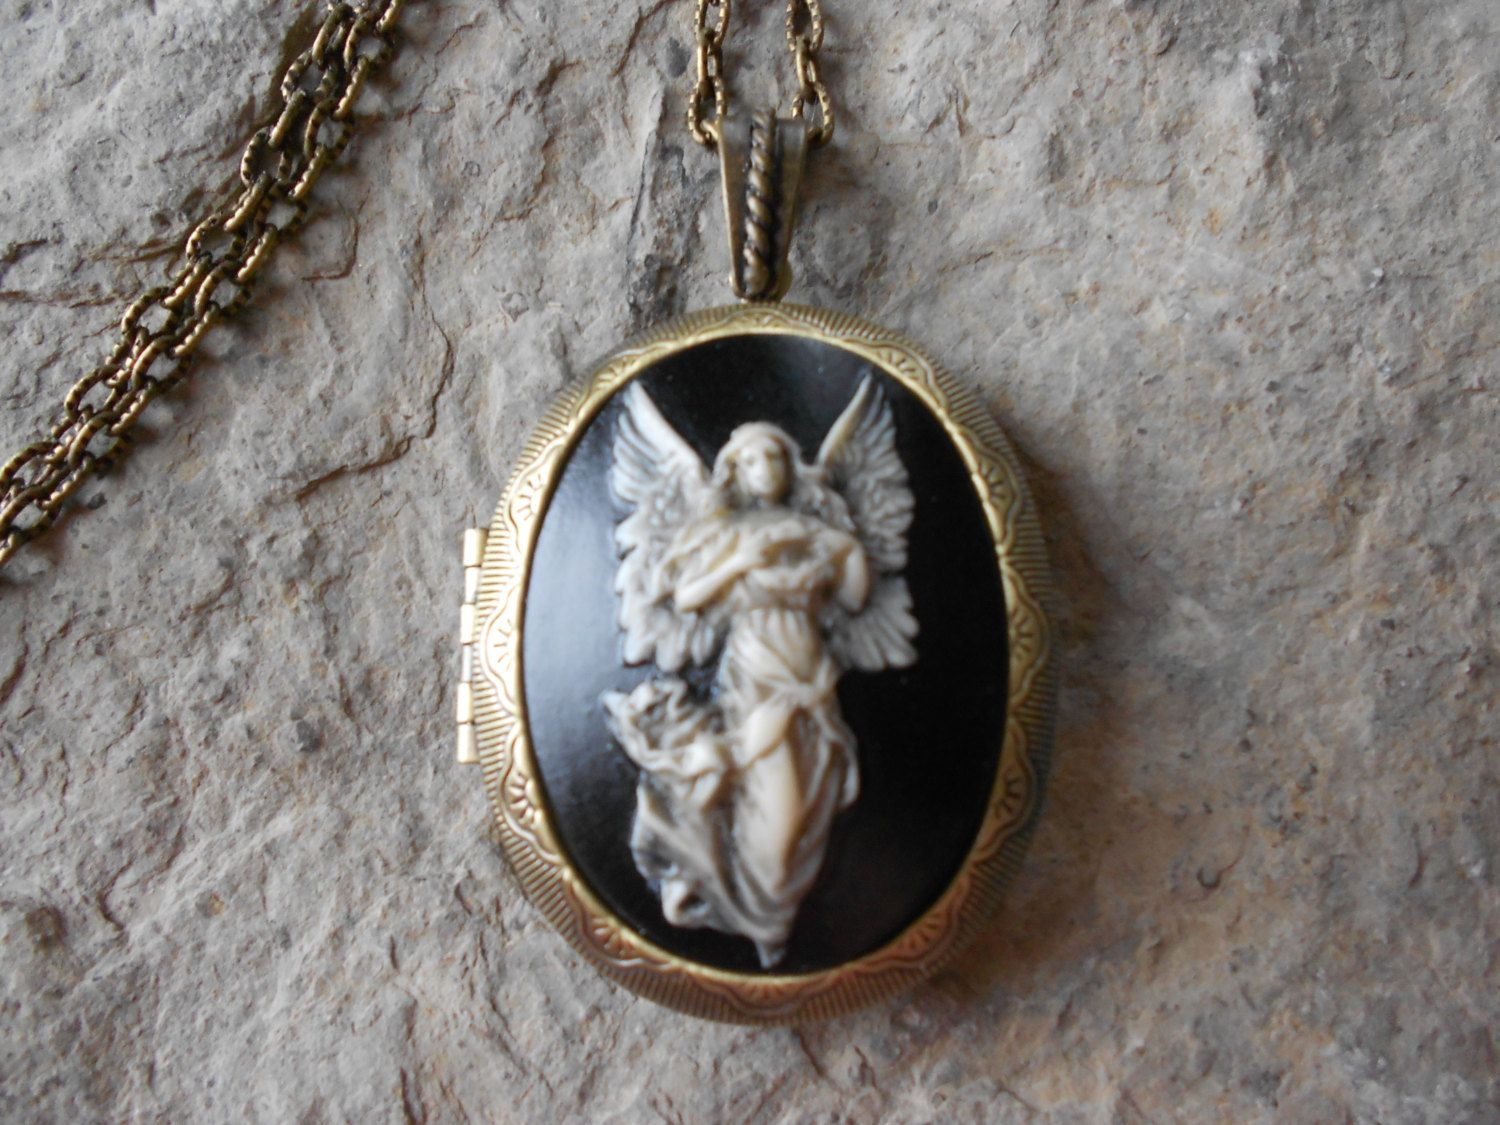 kopie icatchy shop jewellery guardian dsc lockets necklaces gold angel